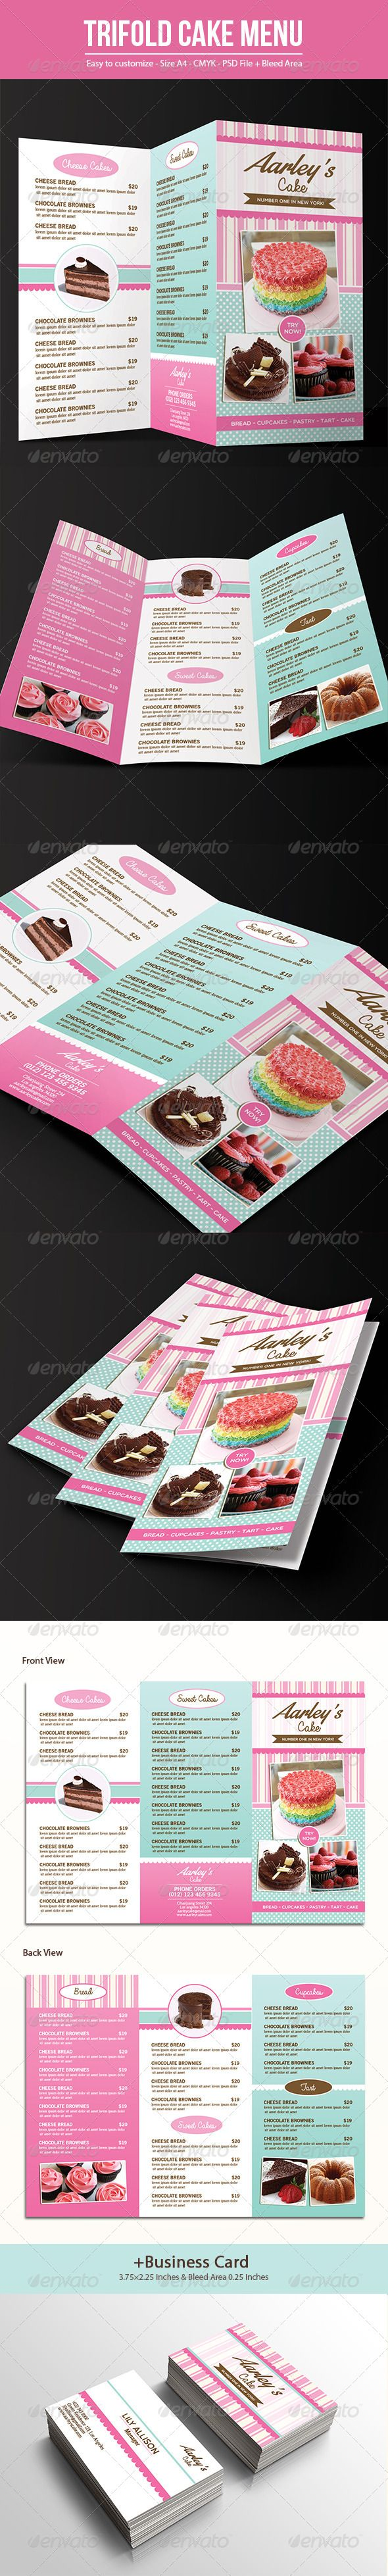 Trifold Cake Menu Business Card Template design speisekarte